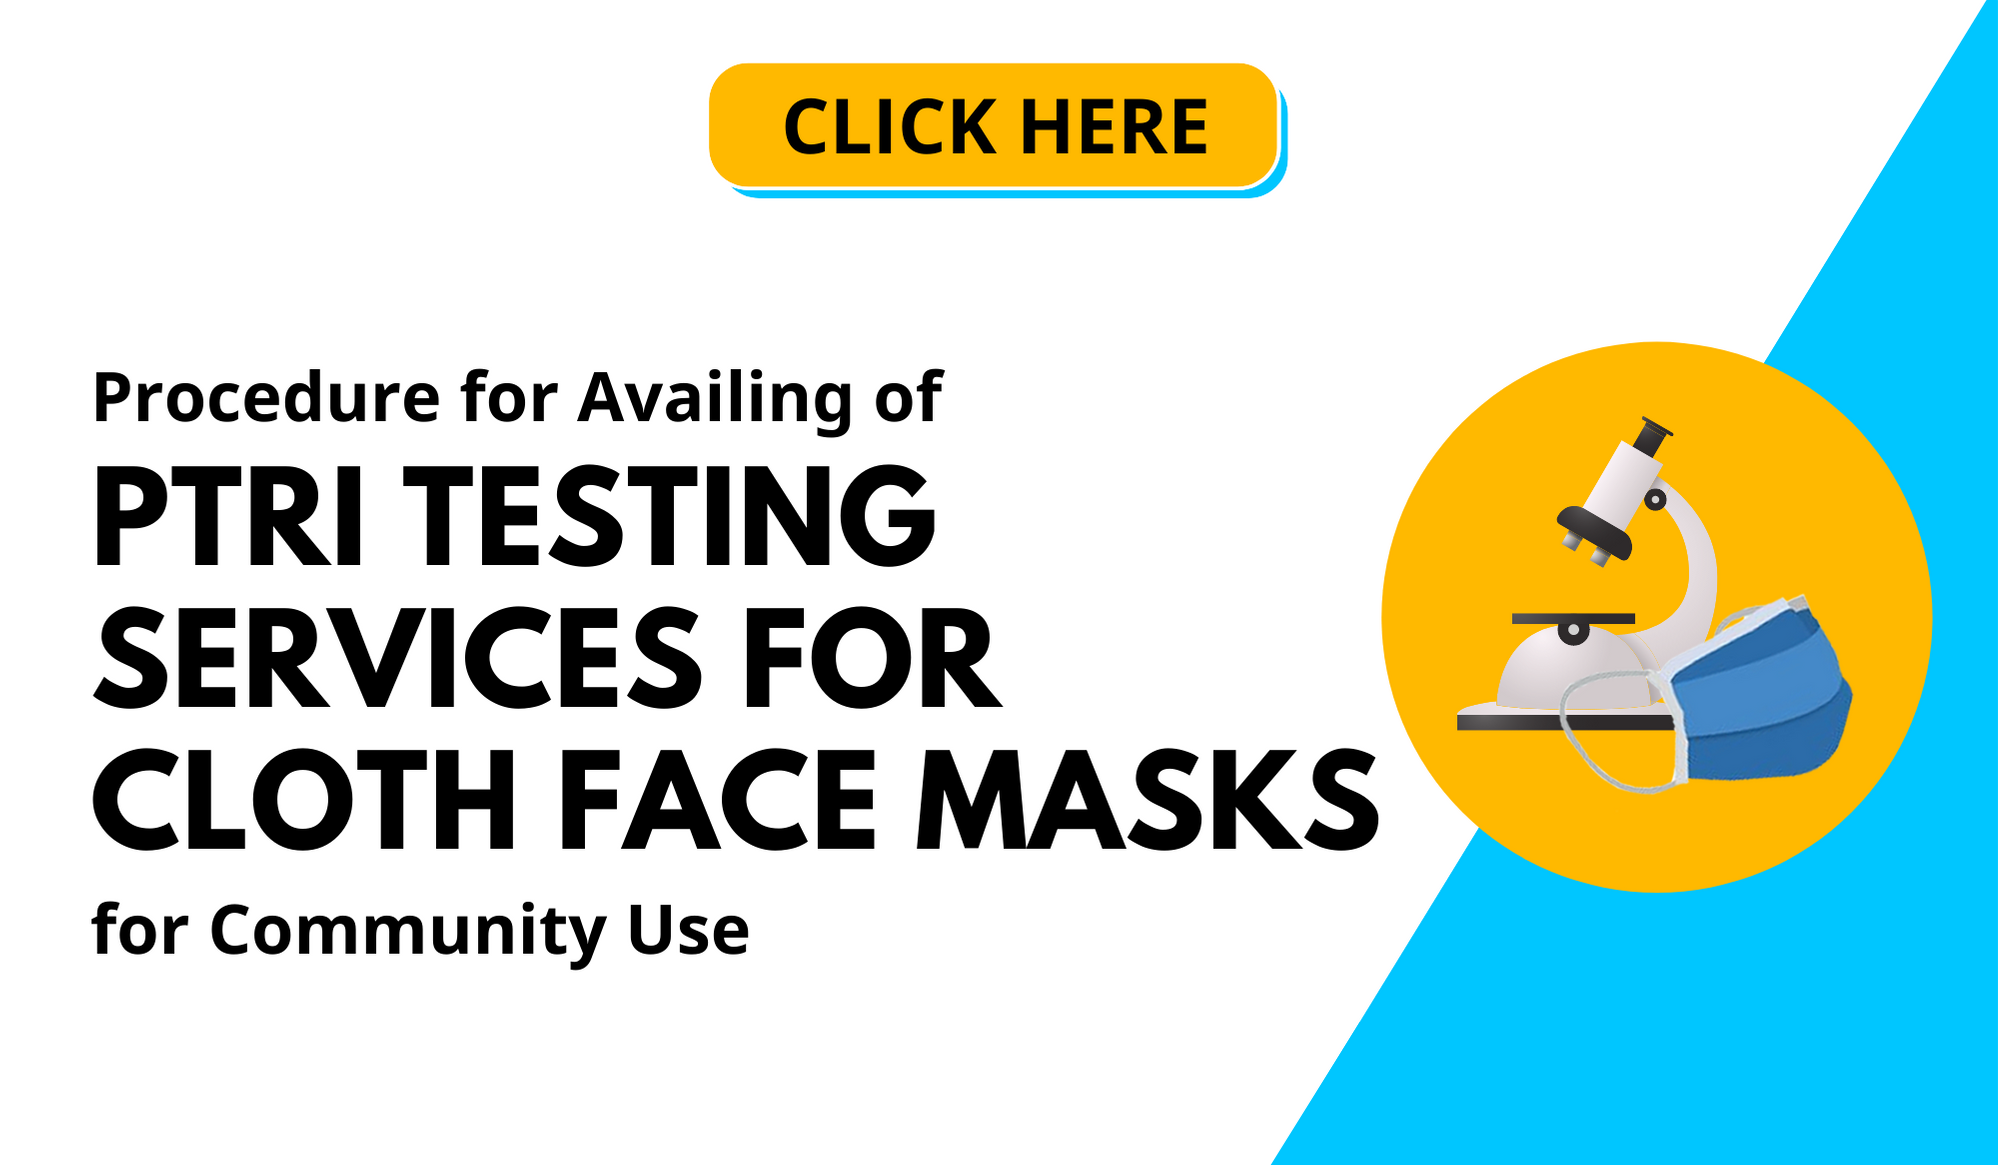 Procedure for Availing of PTRI Testing Services for Cloth Face Masks for Community Use